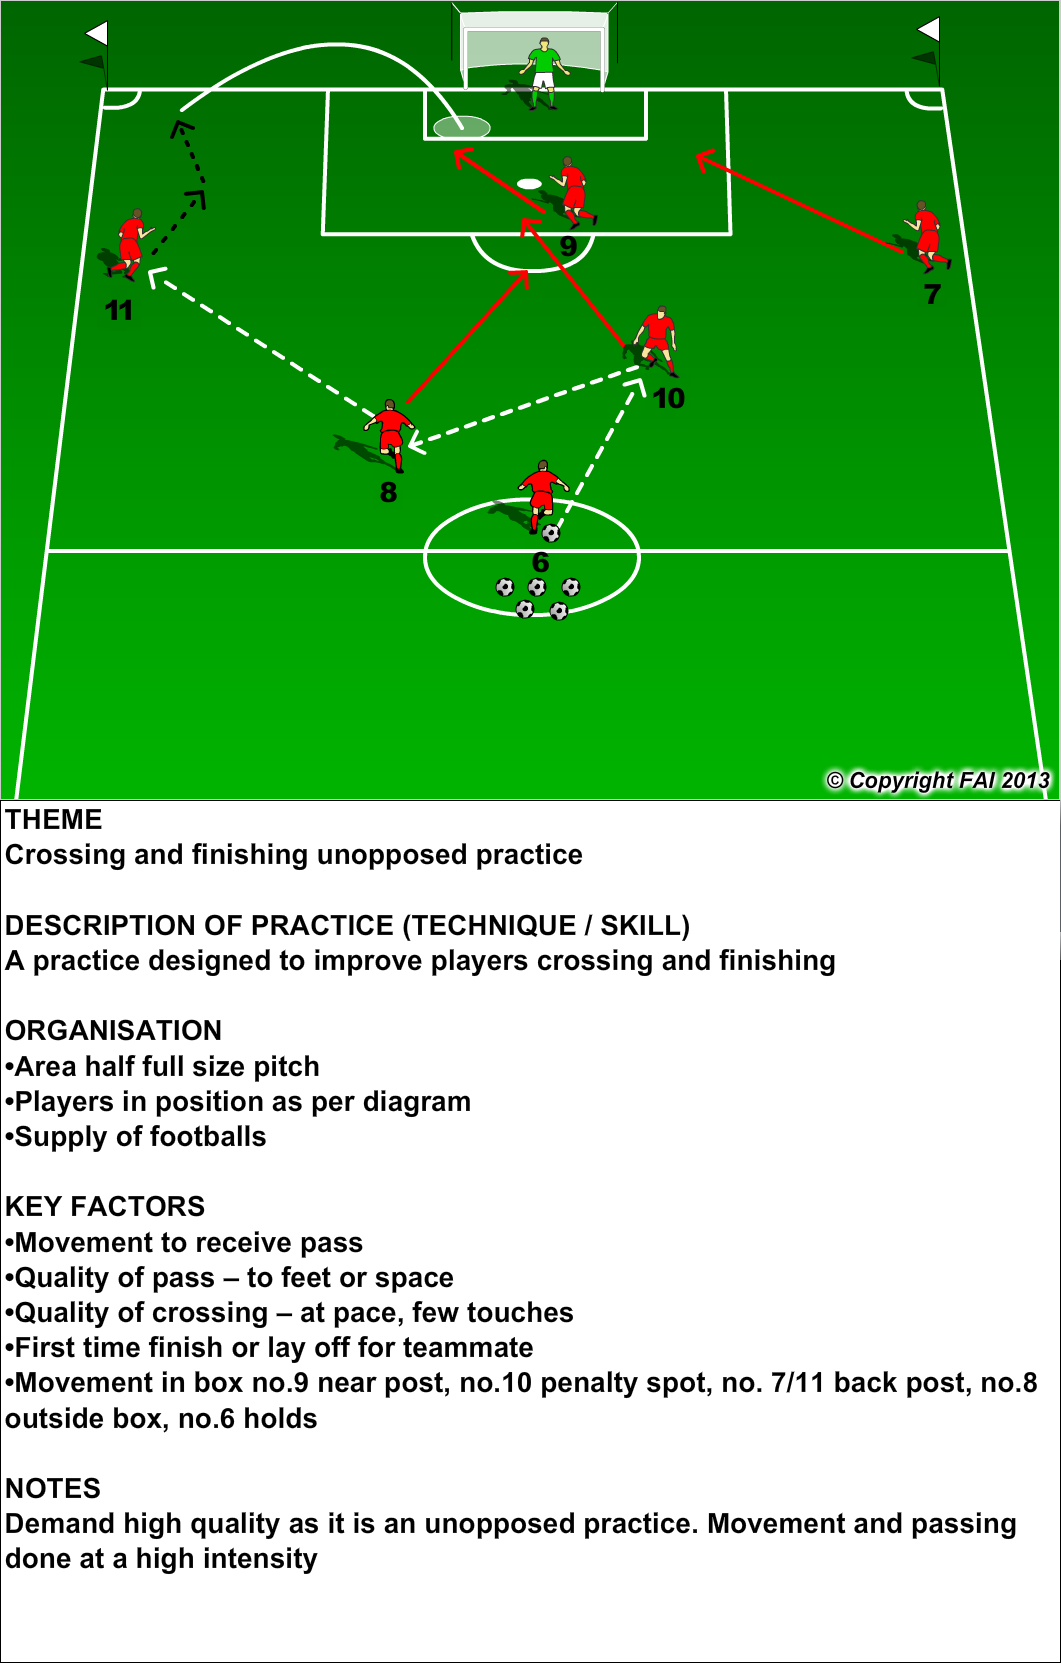 RT @Jamesscott89Com: @CoachingFamily THEME Crossing and finishing unopposed practice http://t.co/8hosooxdeO